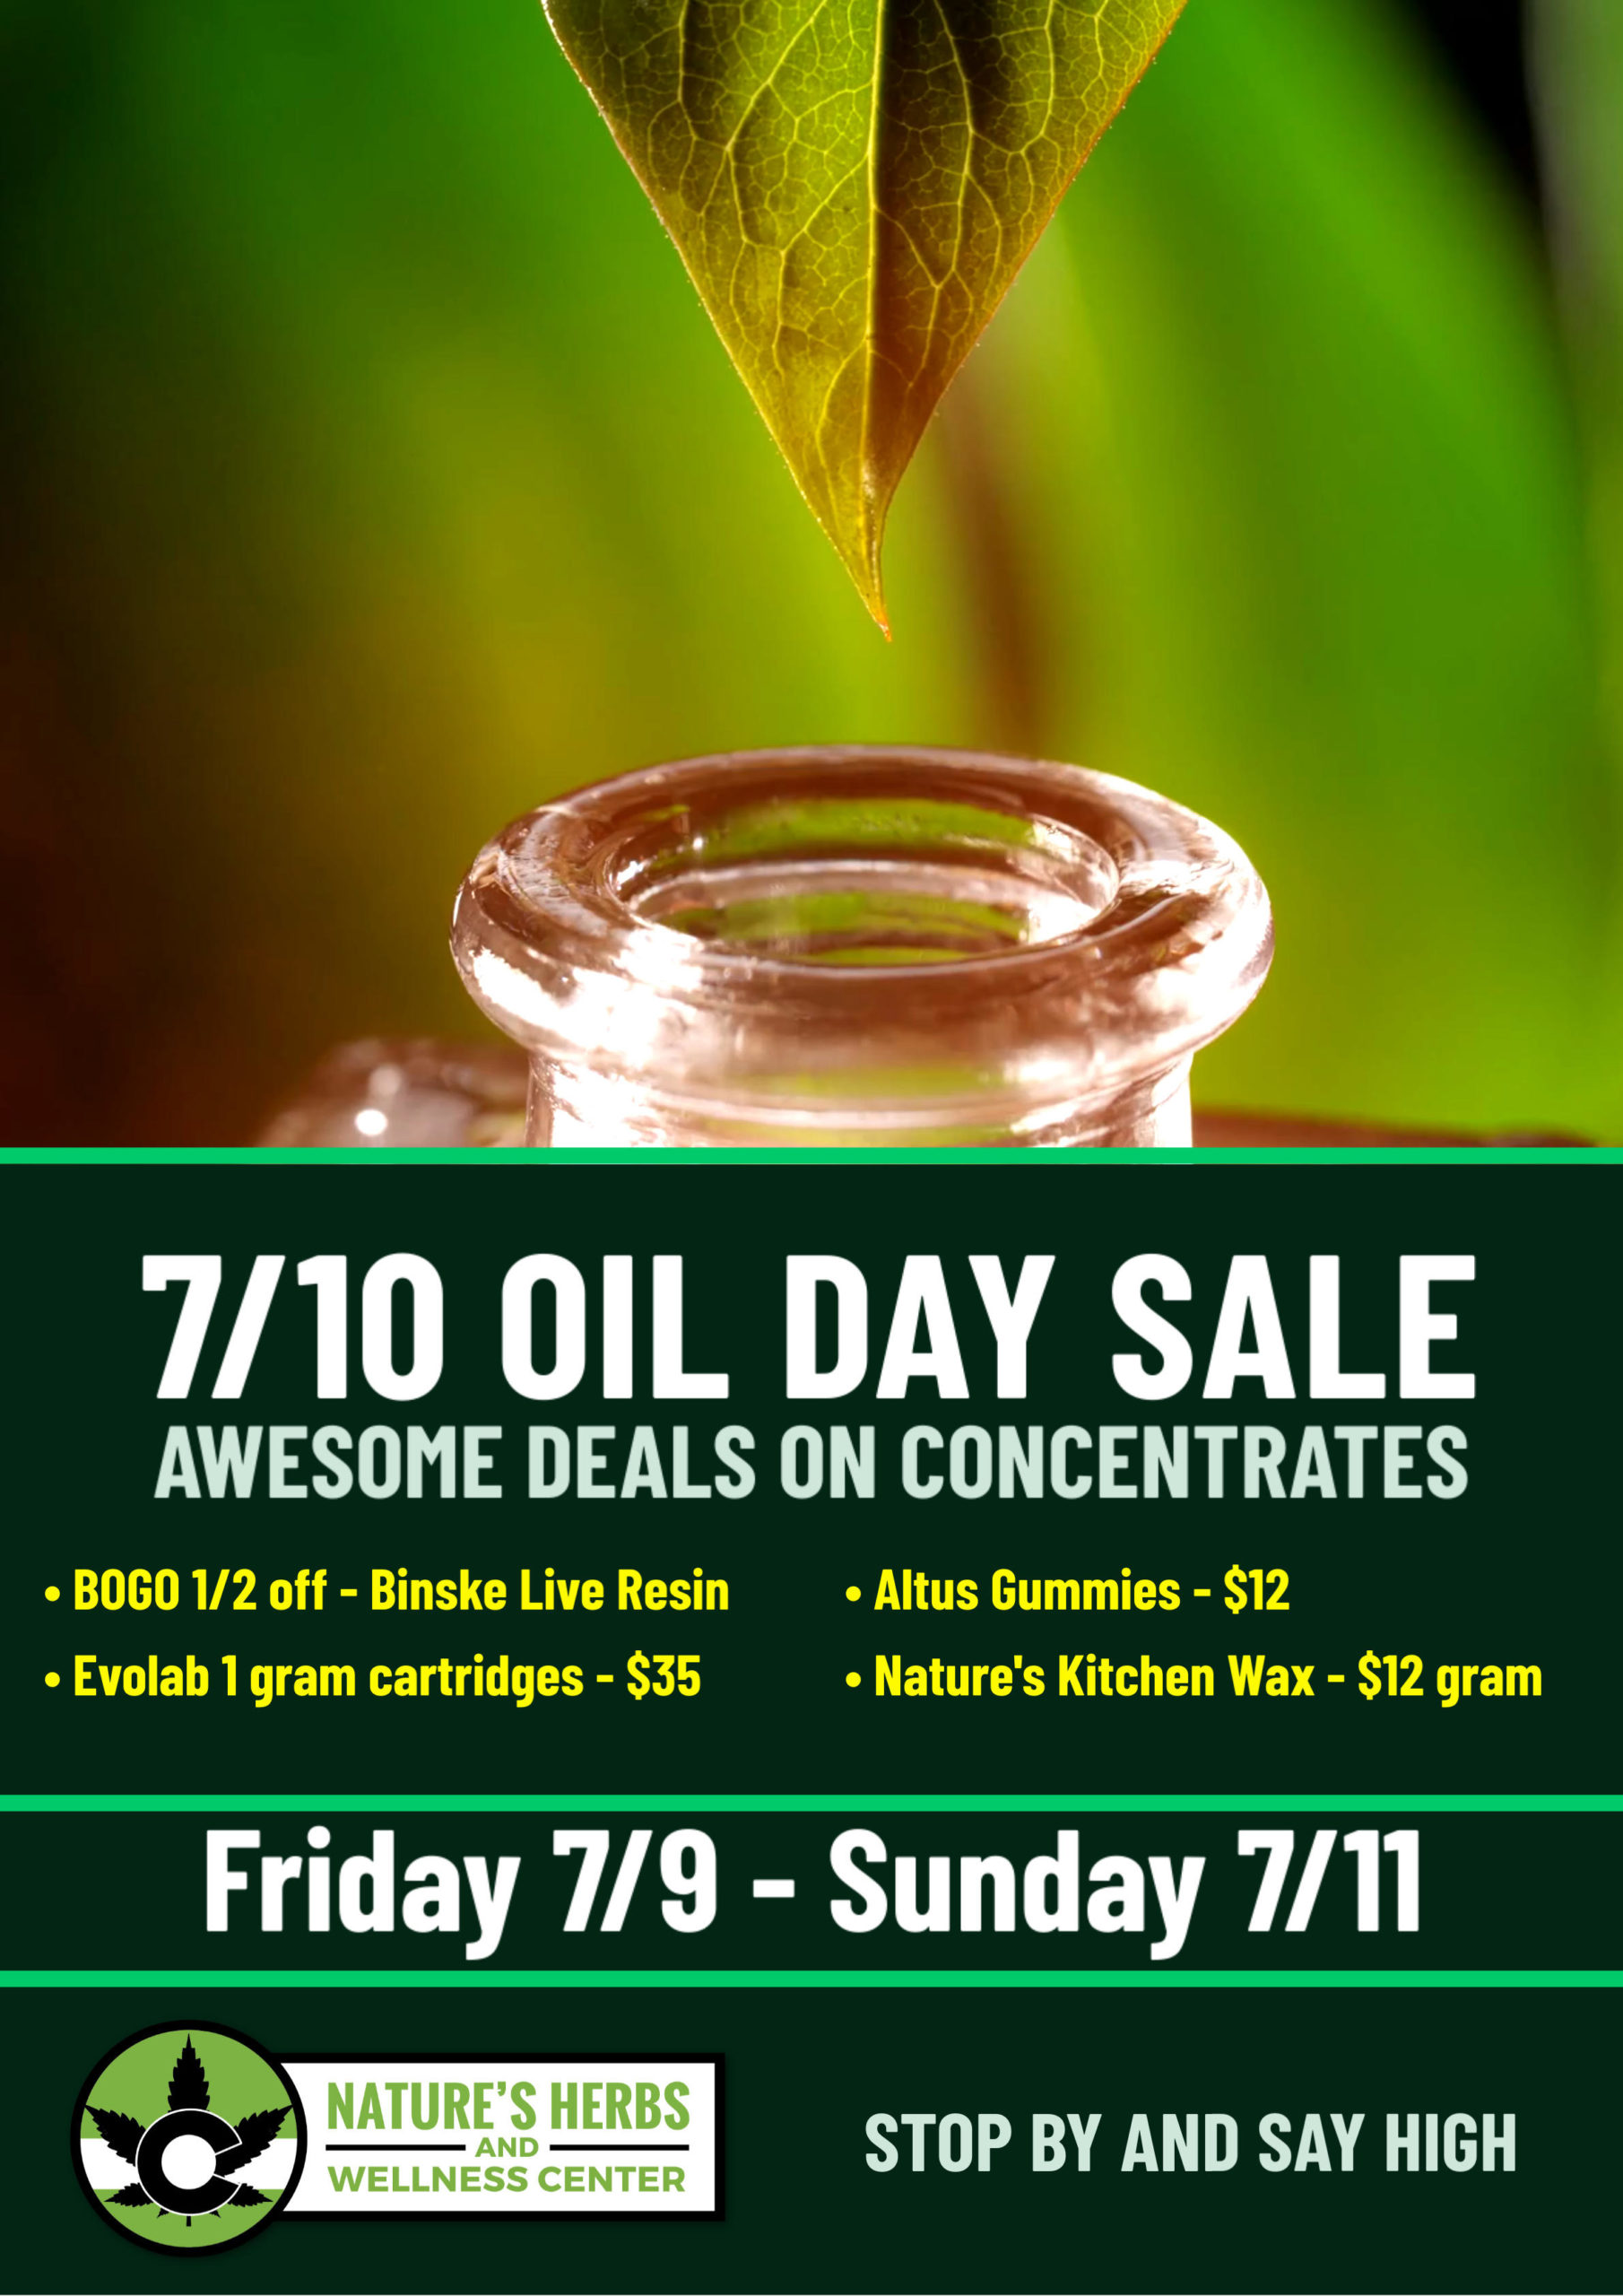 710 Sale at ALL Nature's Herbs REC Locations!